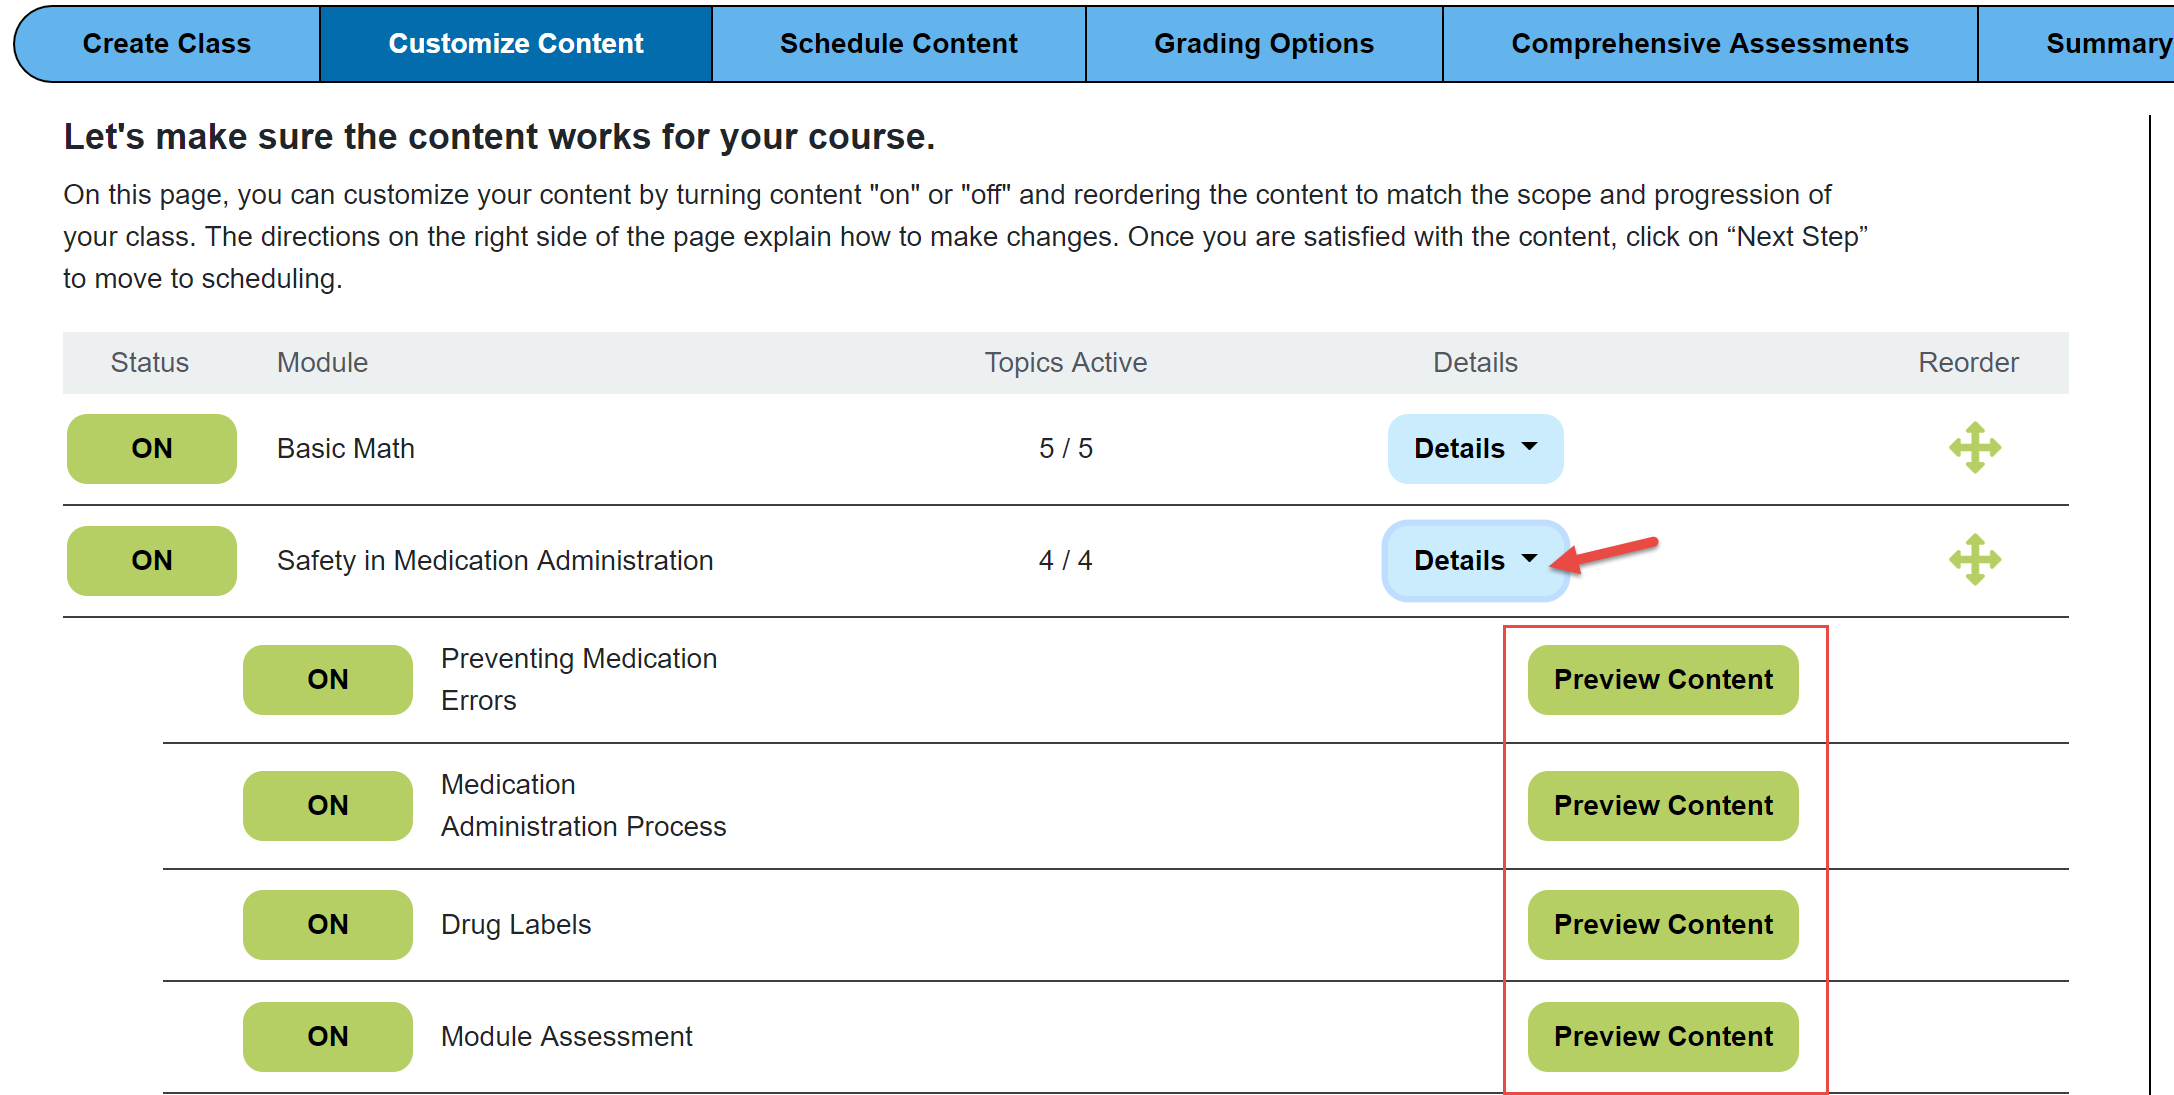 Screenshot of preview content page showing Assignments in Dosage Calc 360. There is a red arrow drawing attention to the Details button that when clicked drops down subtopics. There is a red box around the Preview Content buttons for each subtopic.